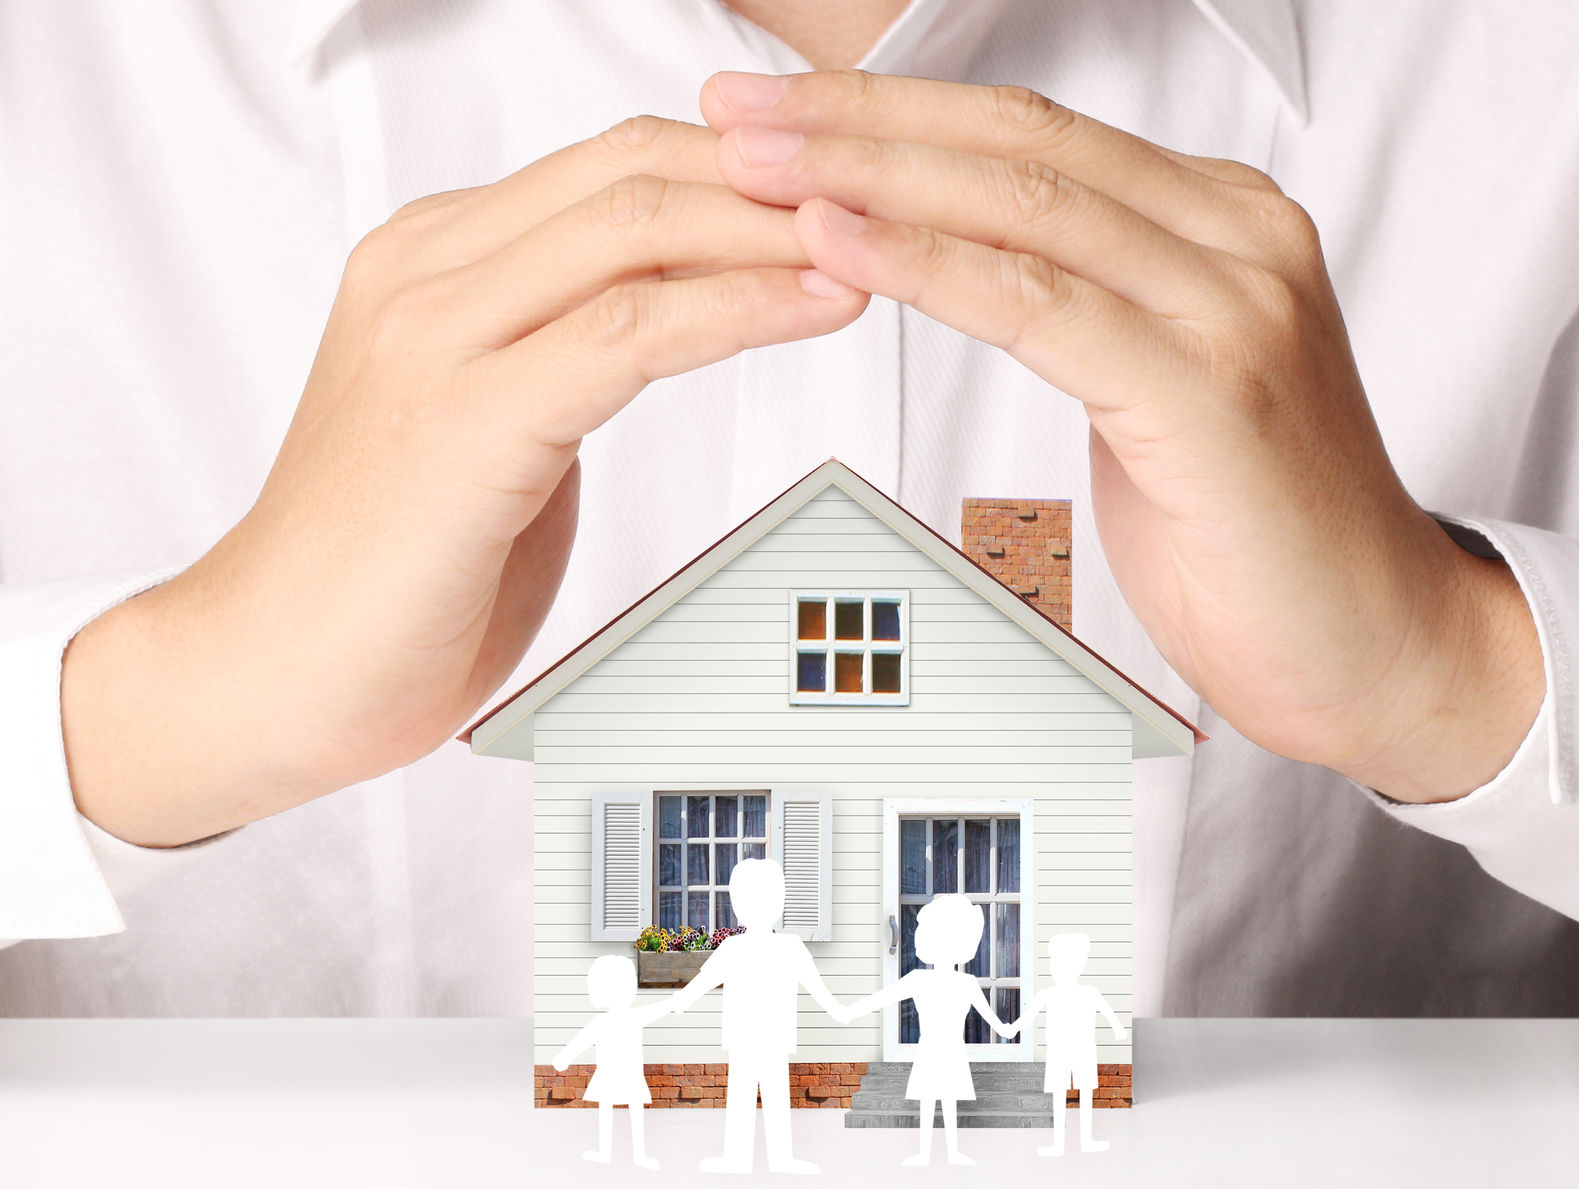 BNM Expands Eligibility Criteria For Affordable Home Fund